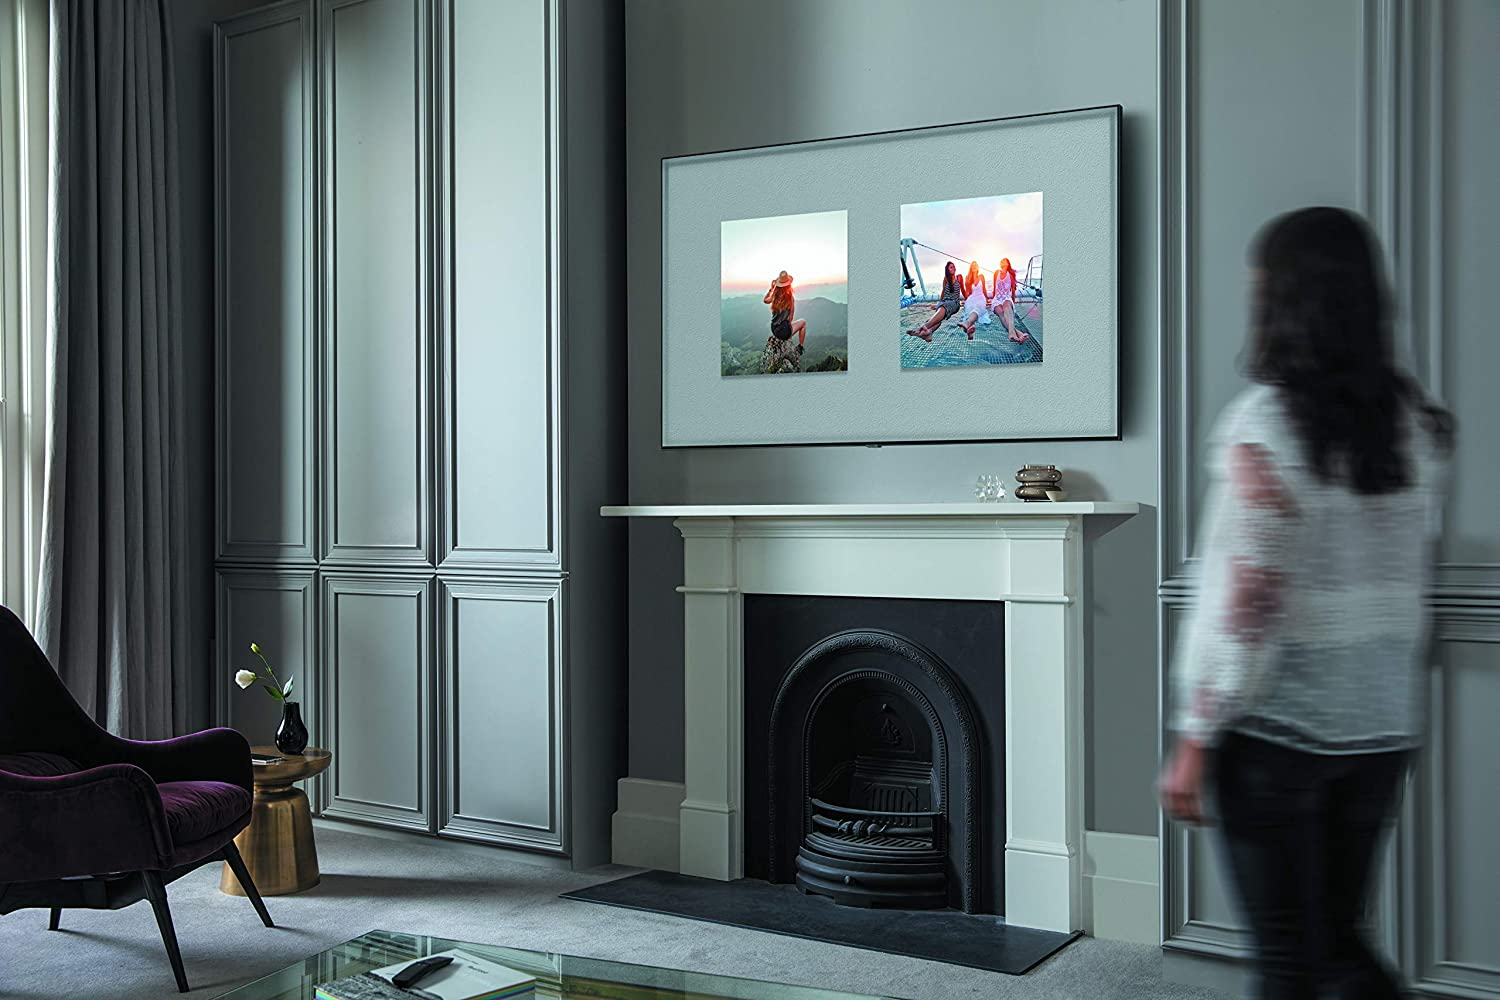 Best 55-inch TV for the money